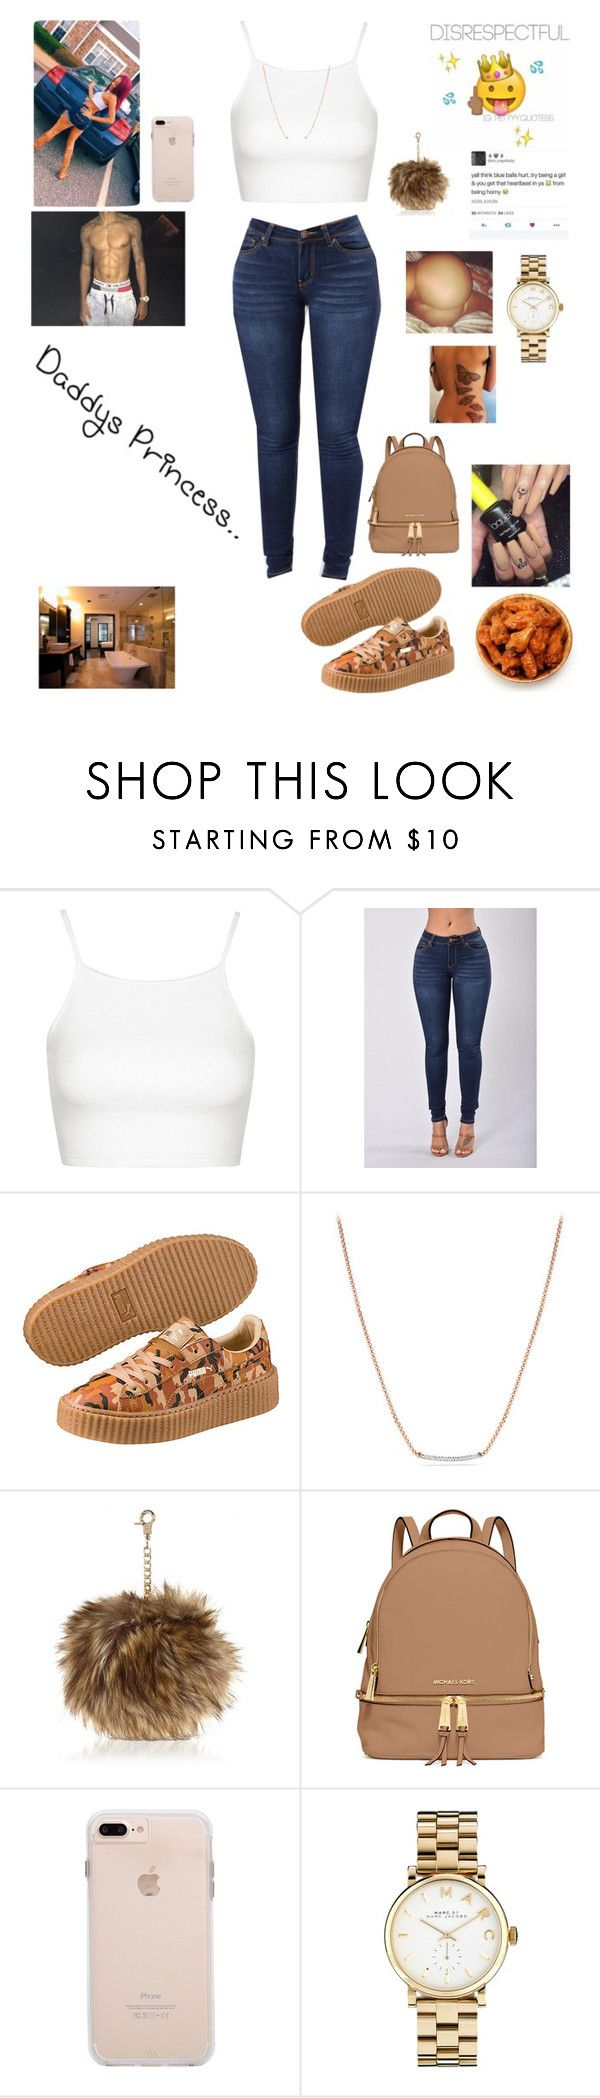 """""""Kaila"""" by goldsouls ❤ liked on Polyvore featuring Topshop, Puma, David Yurman, River Island, MICHAEL Michael Kors and Marc by Marc Jacobs"""